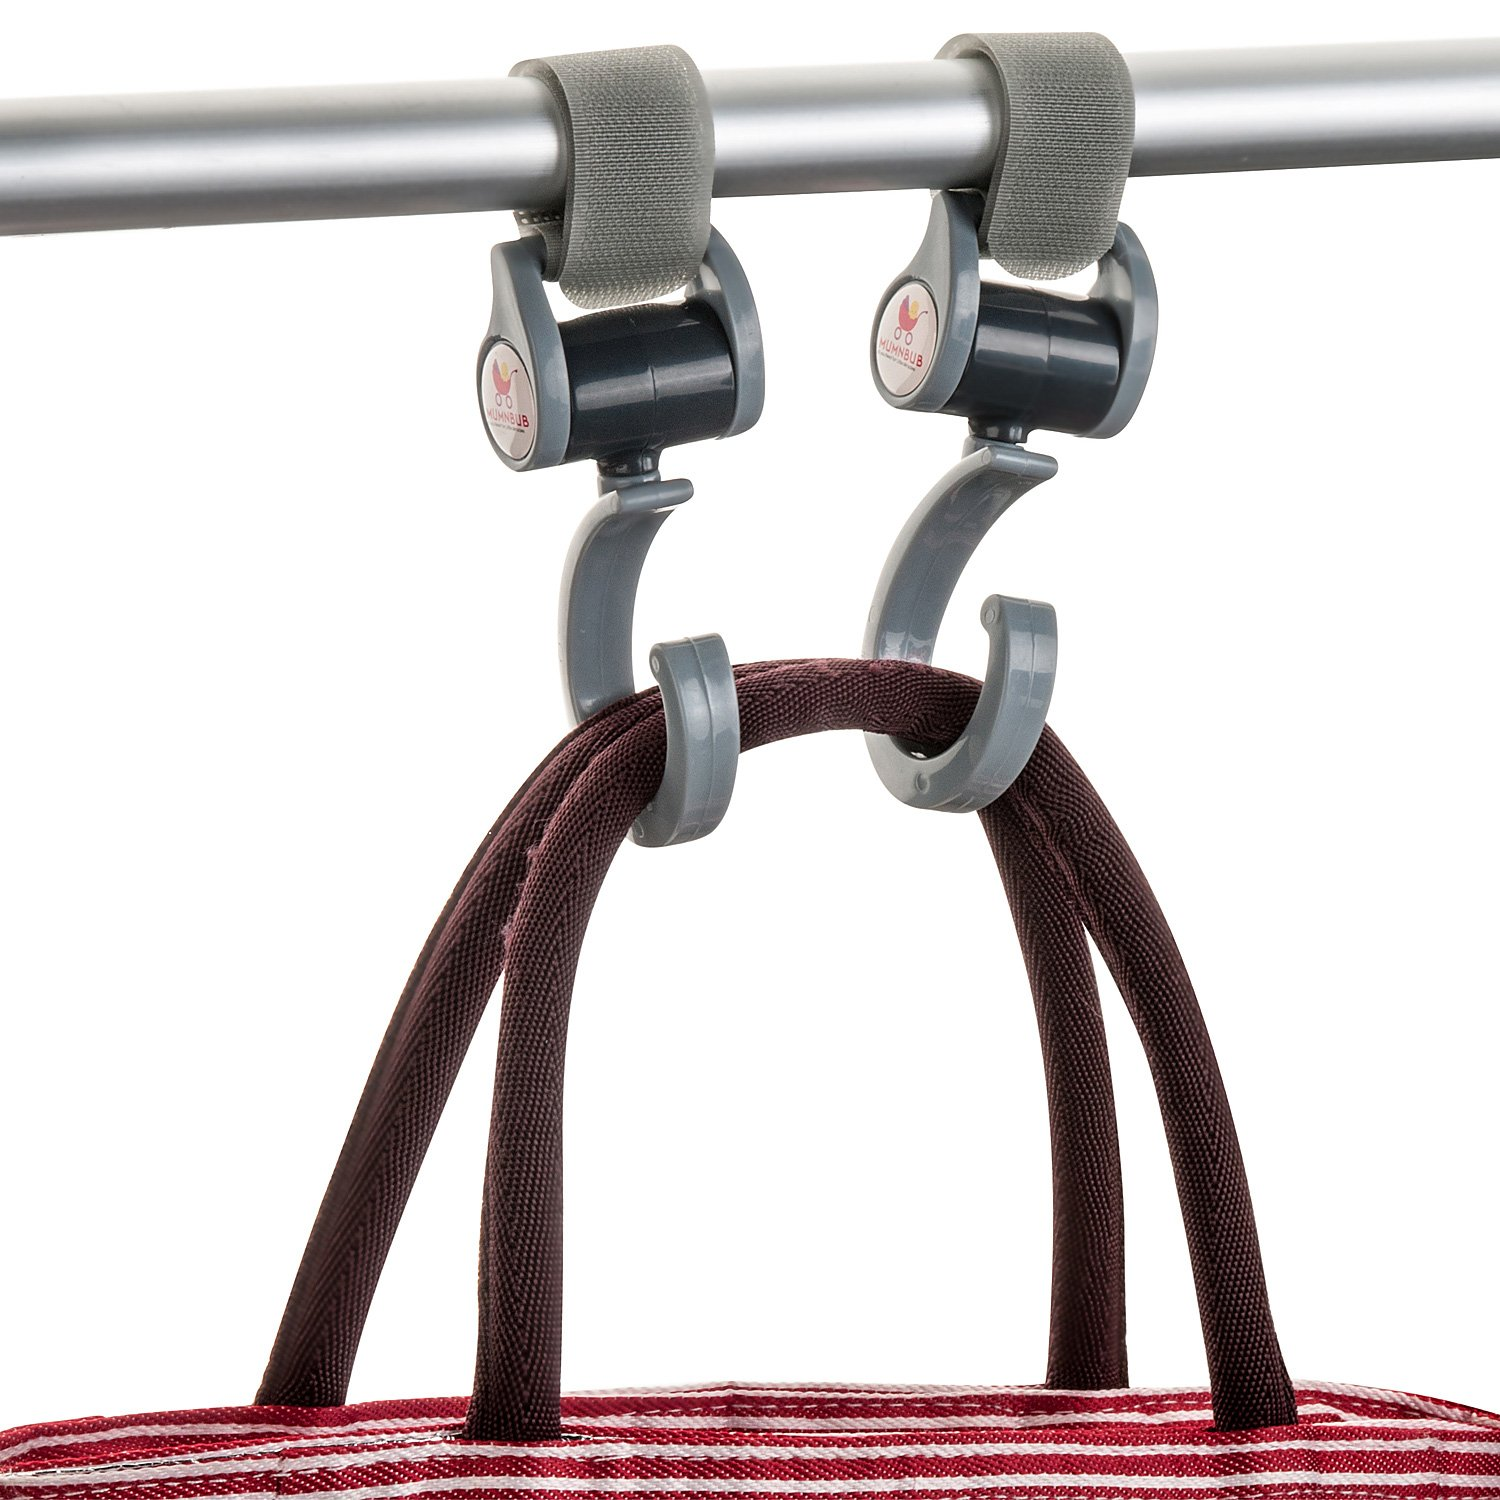 MumnBub Stroller Hook - 2 Pack (Grey) Multi-Purpose Heavy Duty Buggy Clips for Mommy - Universal Fit Perfect Pram Accessories for Hanging Diaper bag, Shopping bag, Groceries -Includes 2 Stroller Pegs by MumnBub (Image #5)